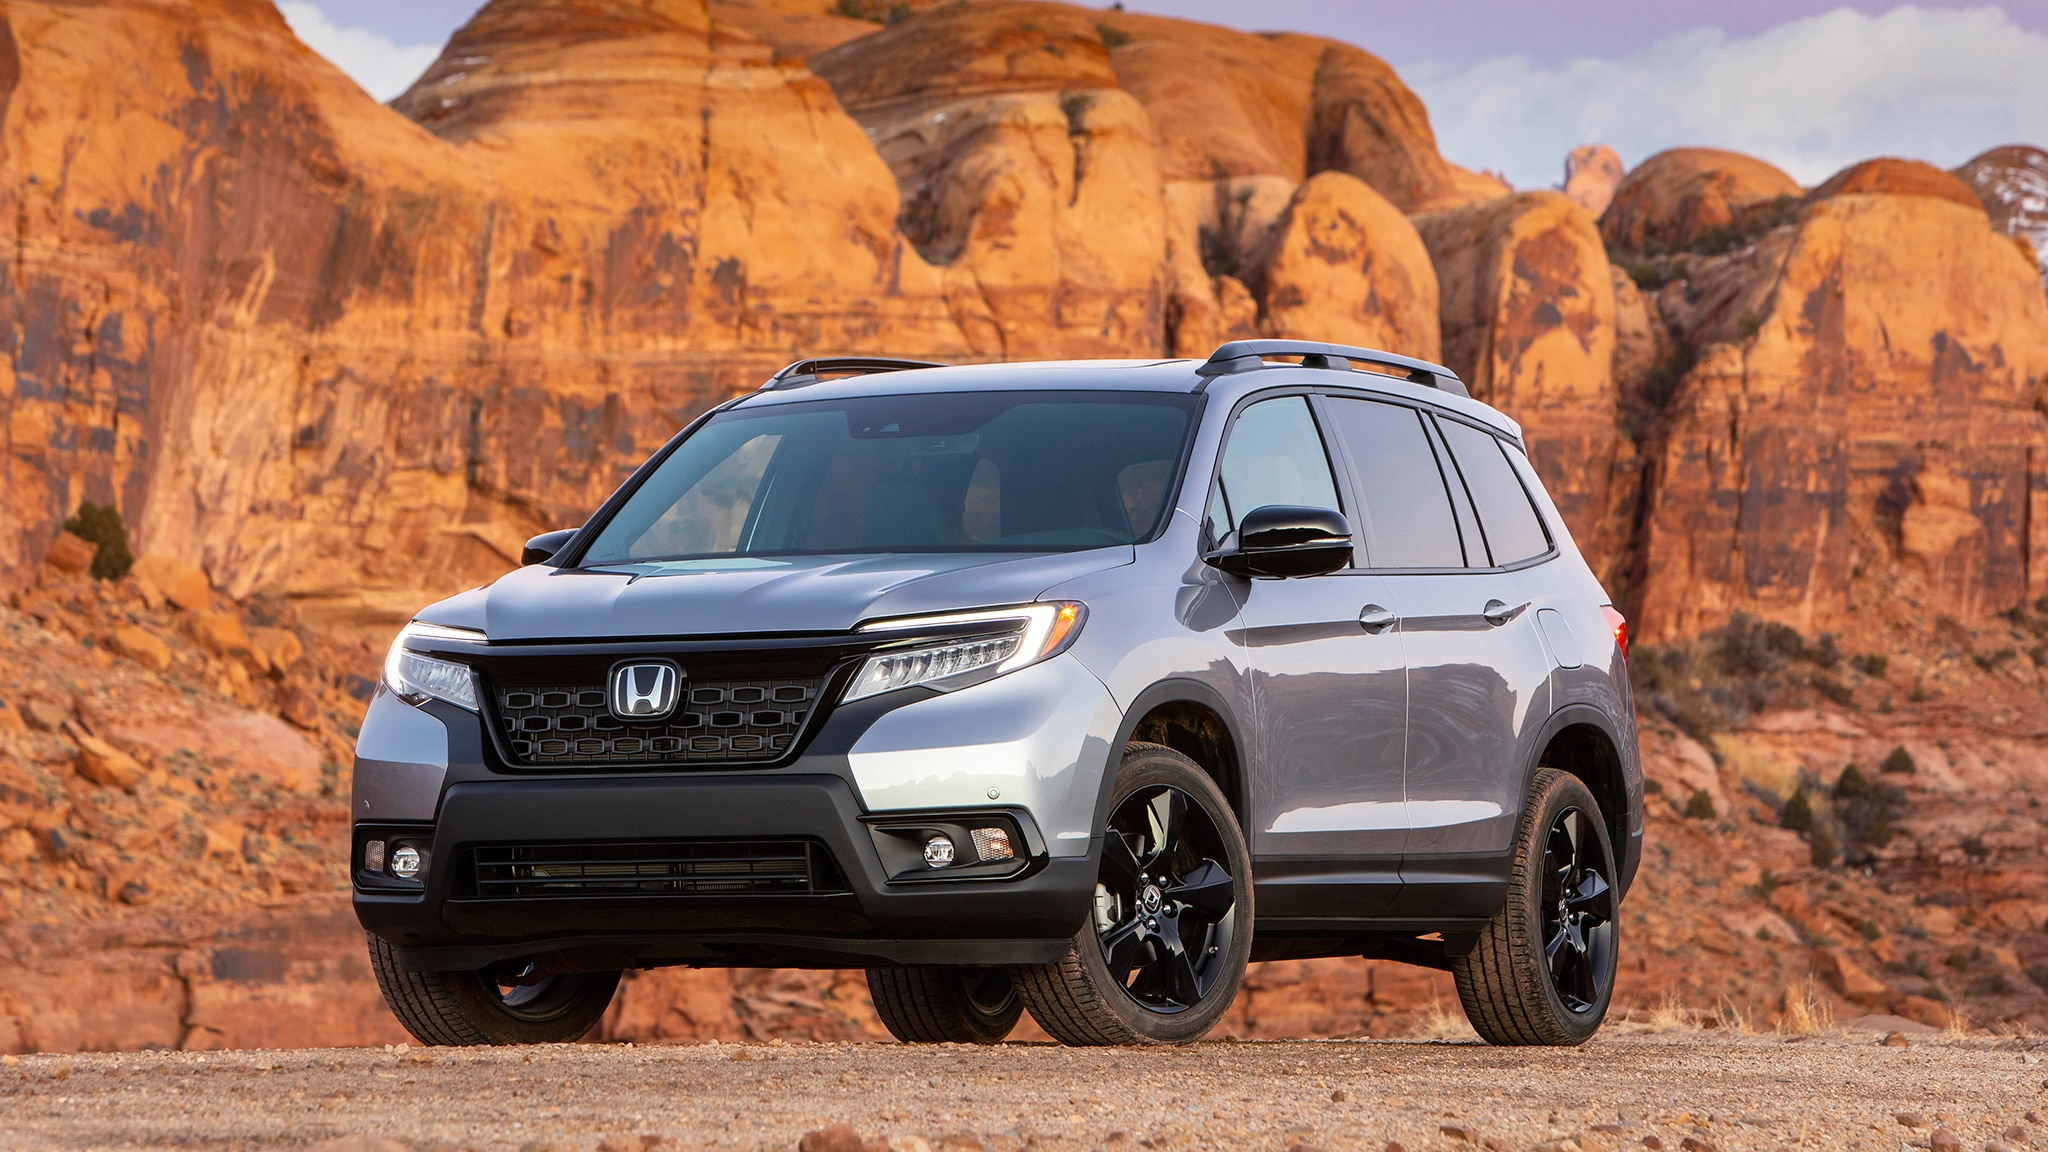 2019 Honda Passport First Drive Review: Logically Thrilling